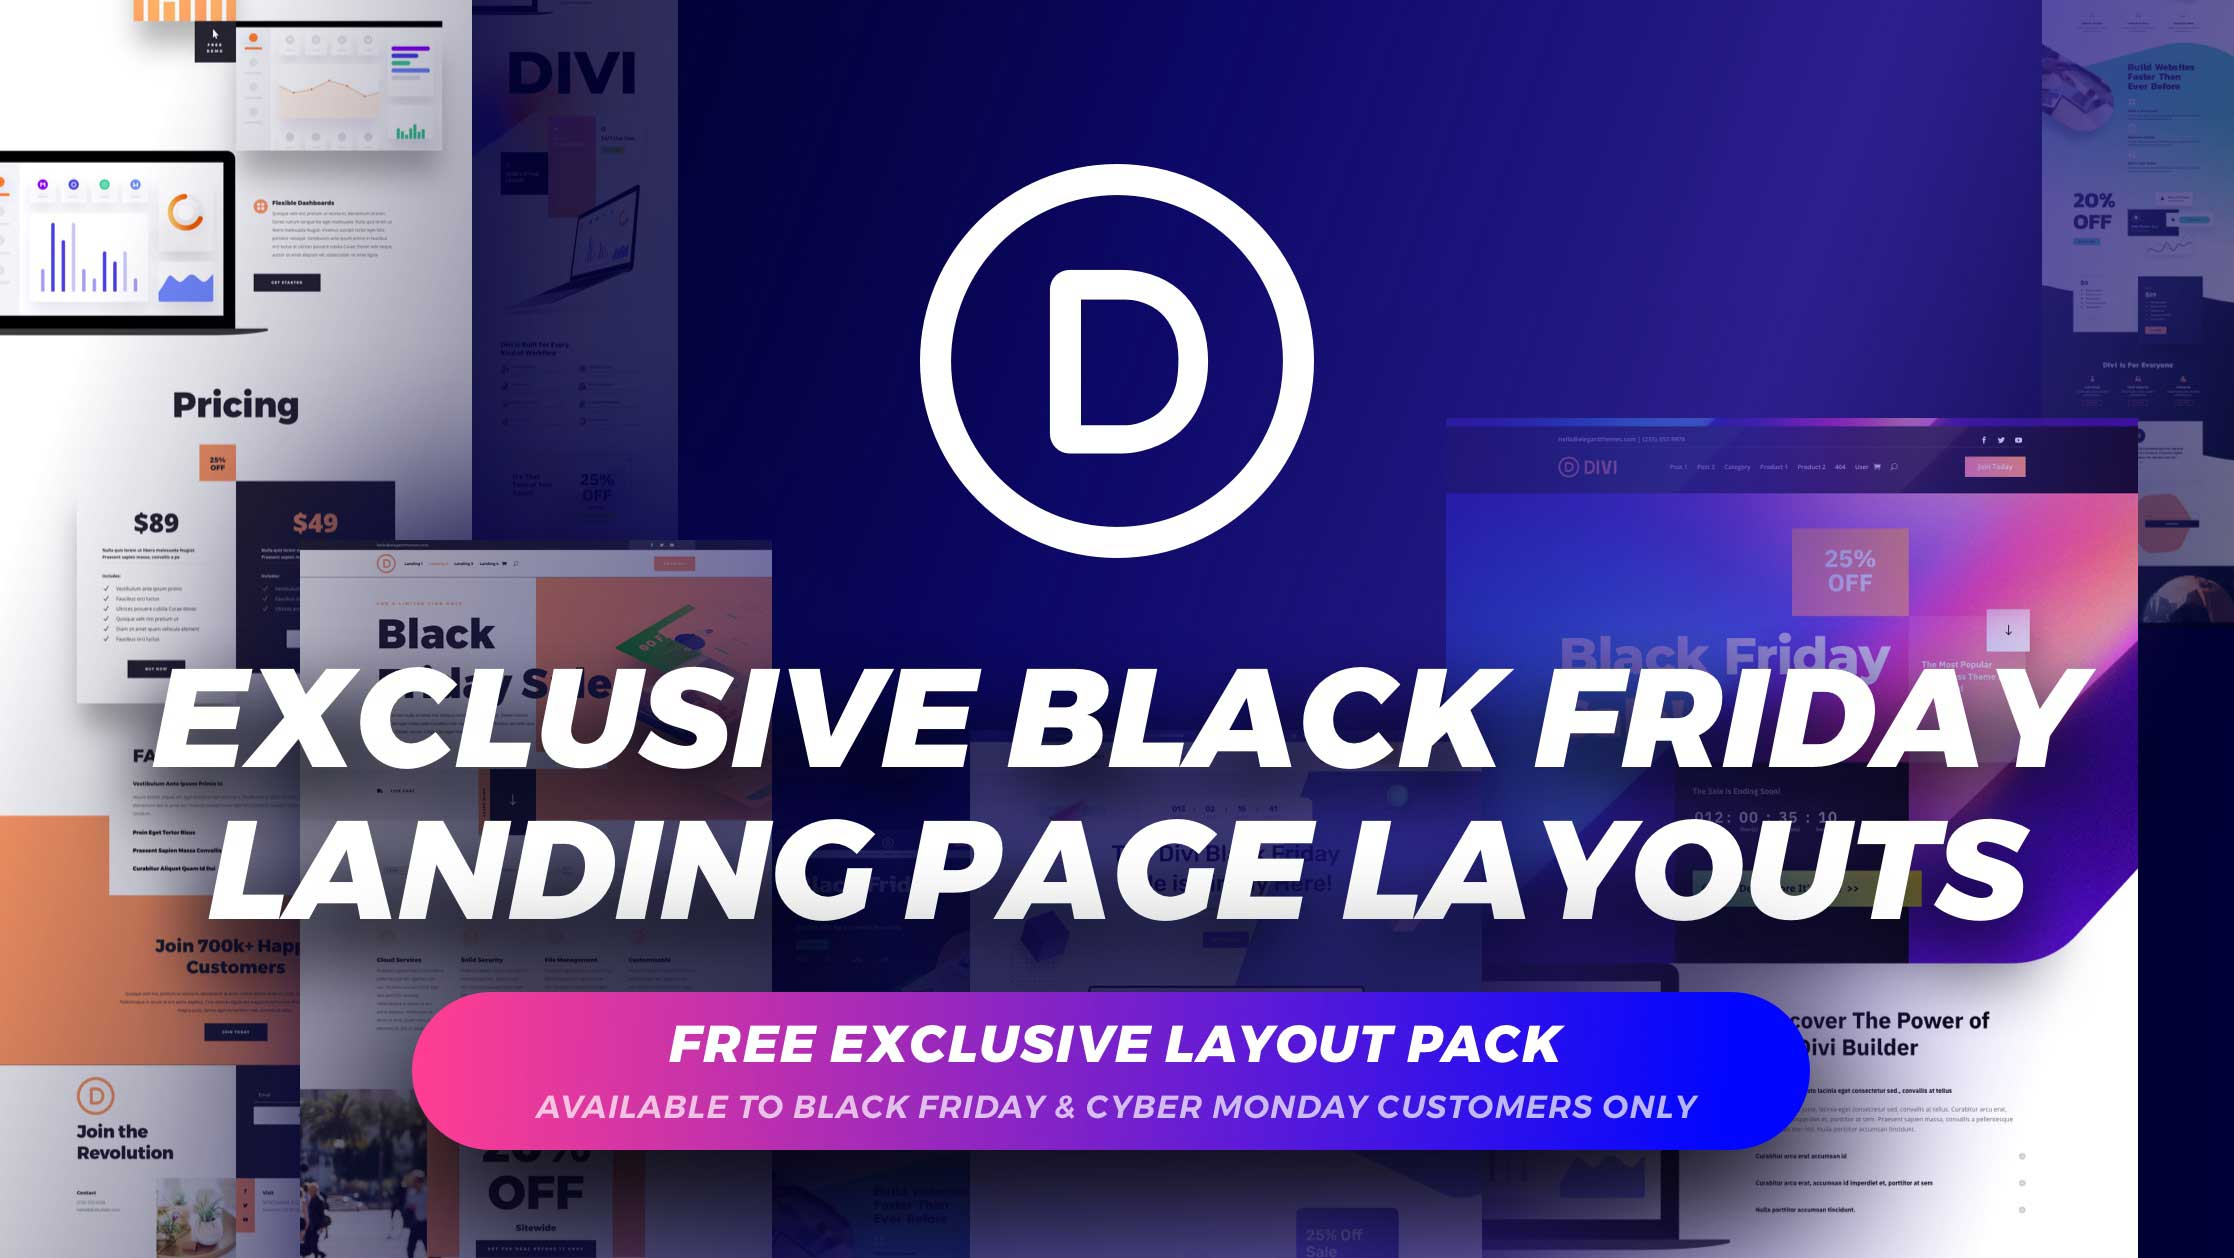 Get the Exclusive FREE Black Friday Landing Page Layout Pack